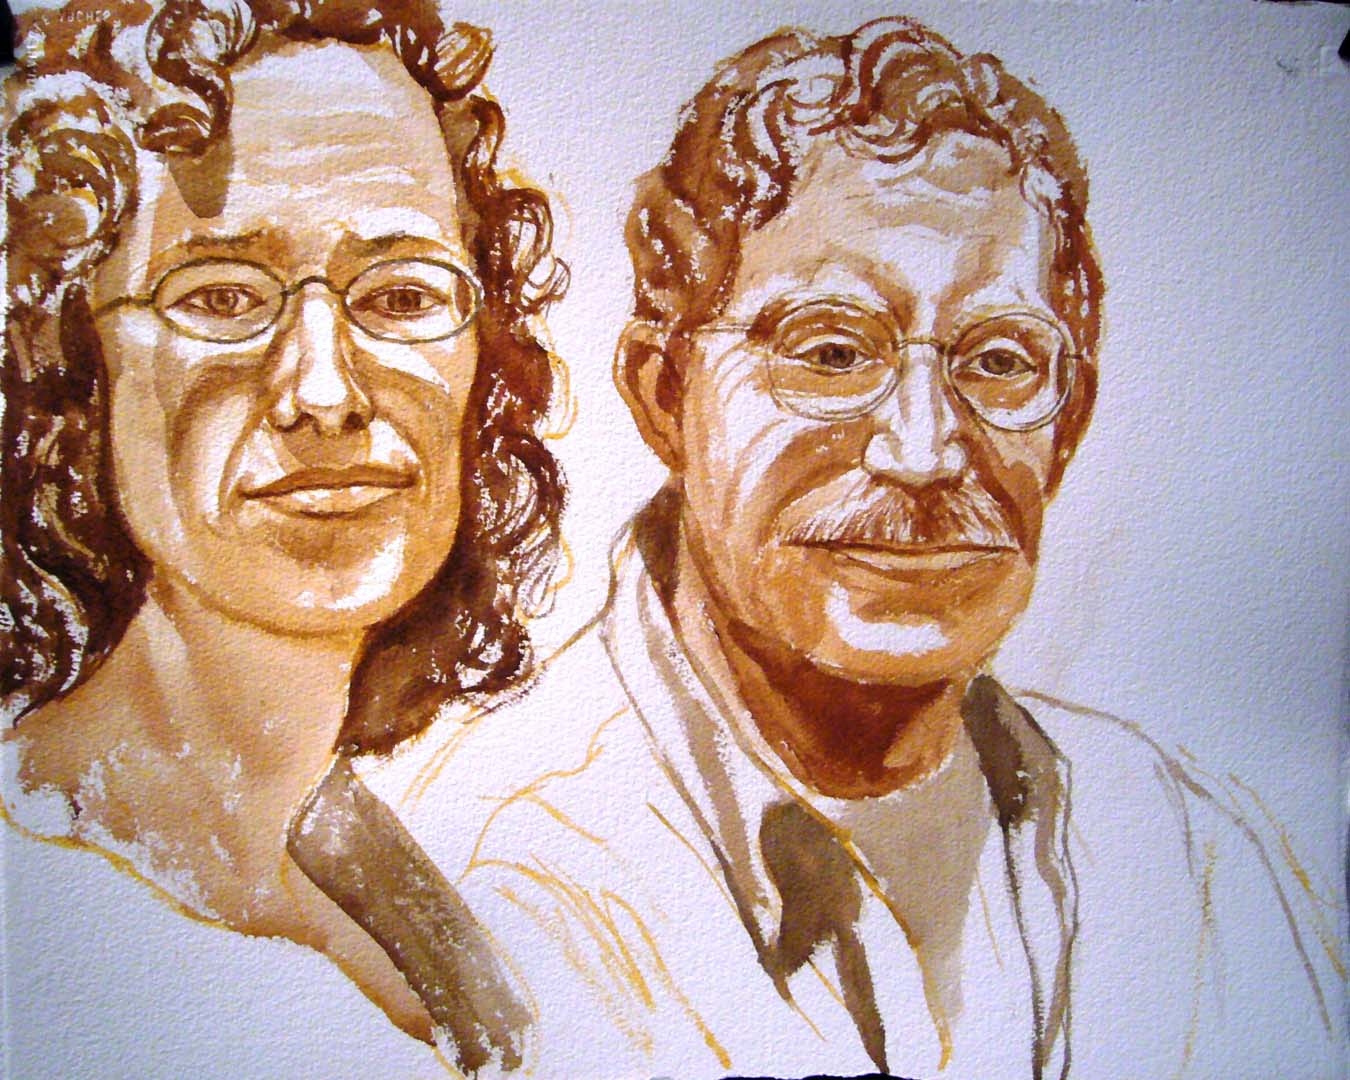 2007 Portrait of Joe & _____ Miller Sepia wash 18 x 22